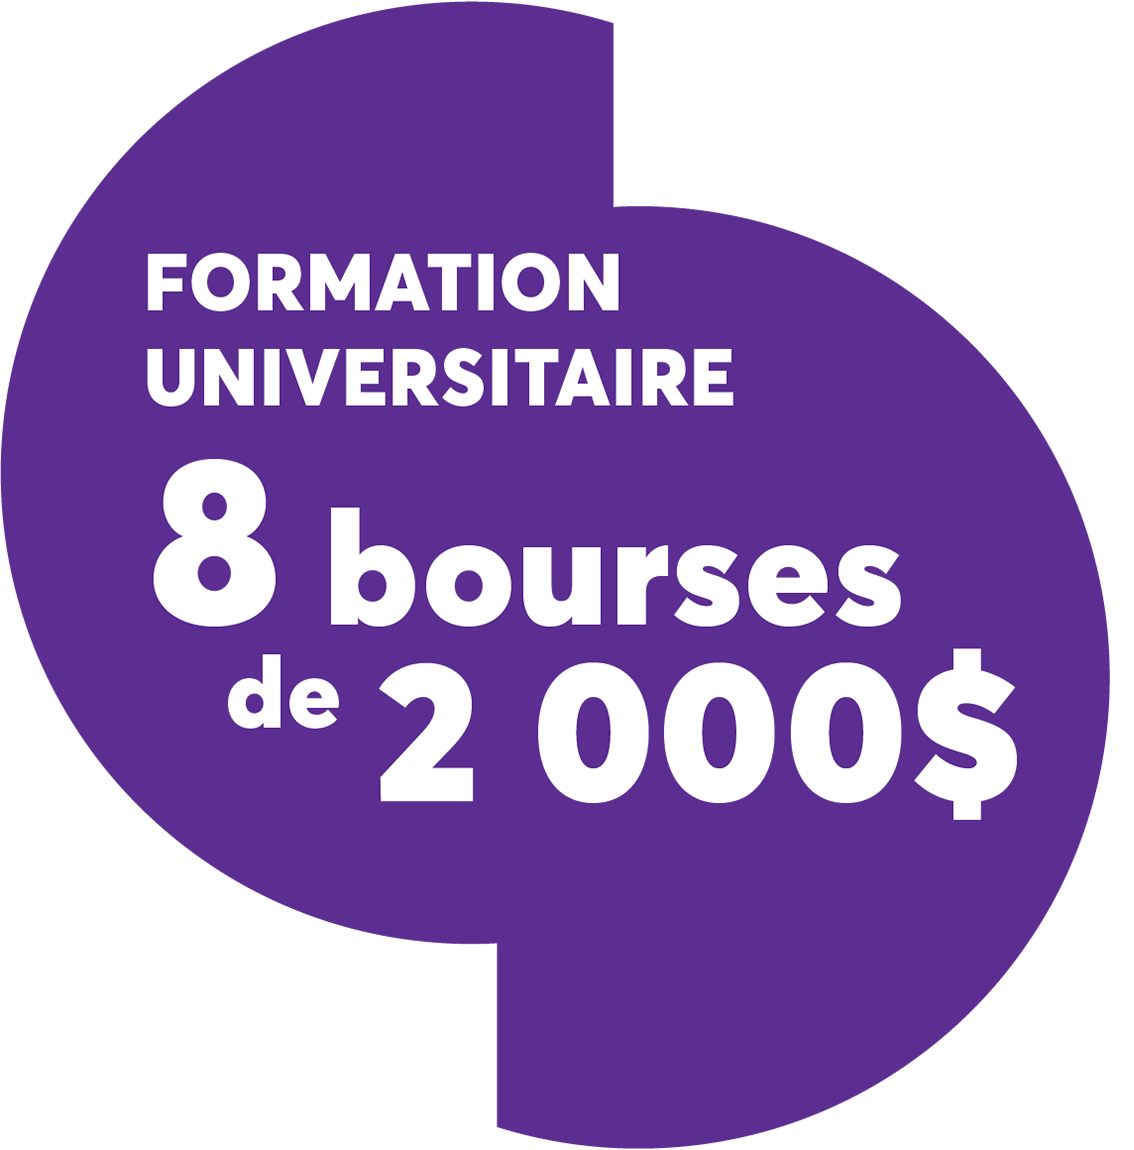 Formation Universitaire@4x.png